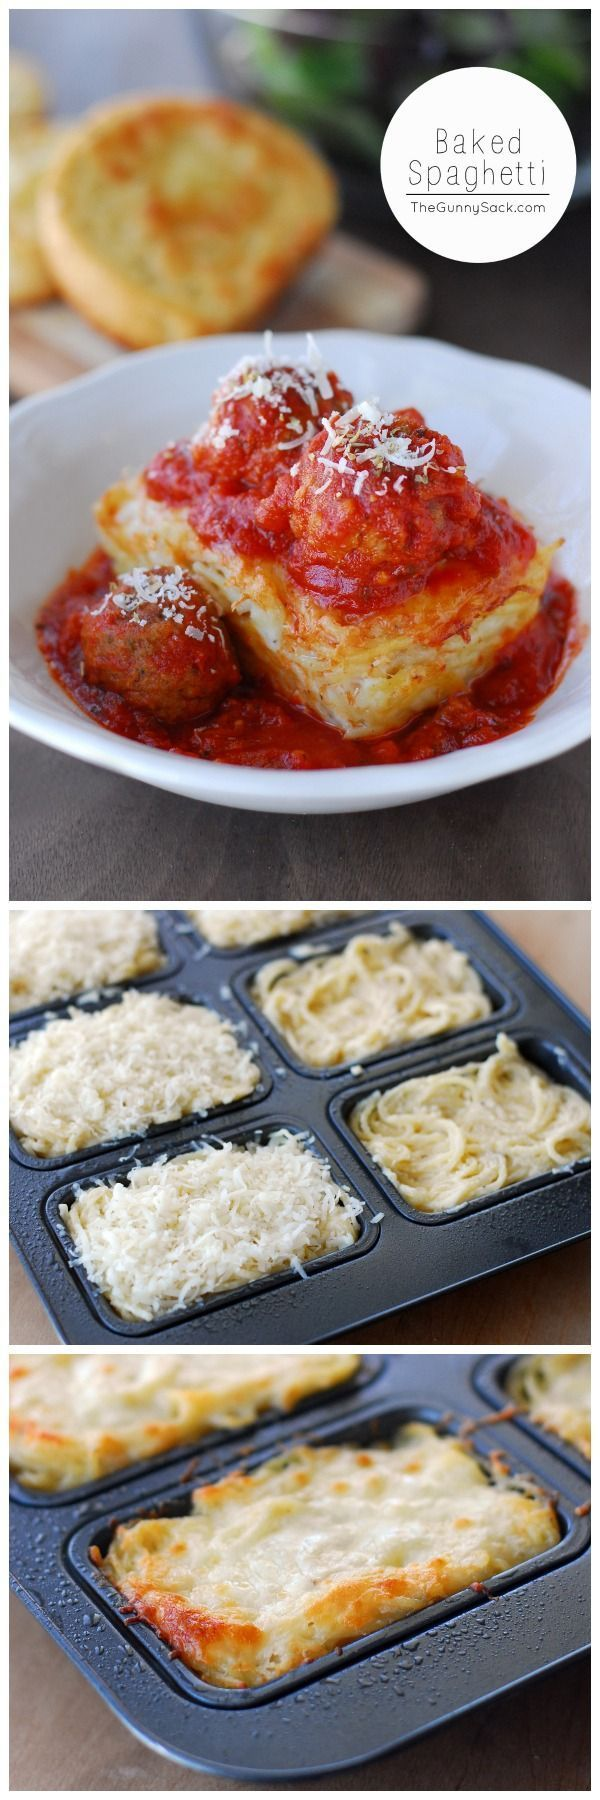 This family friendly dinner recipe for Baked Spaghetti has mini loaves of creamy Alfredo baked spaghetti topped with meatballs and marinara sauce.